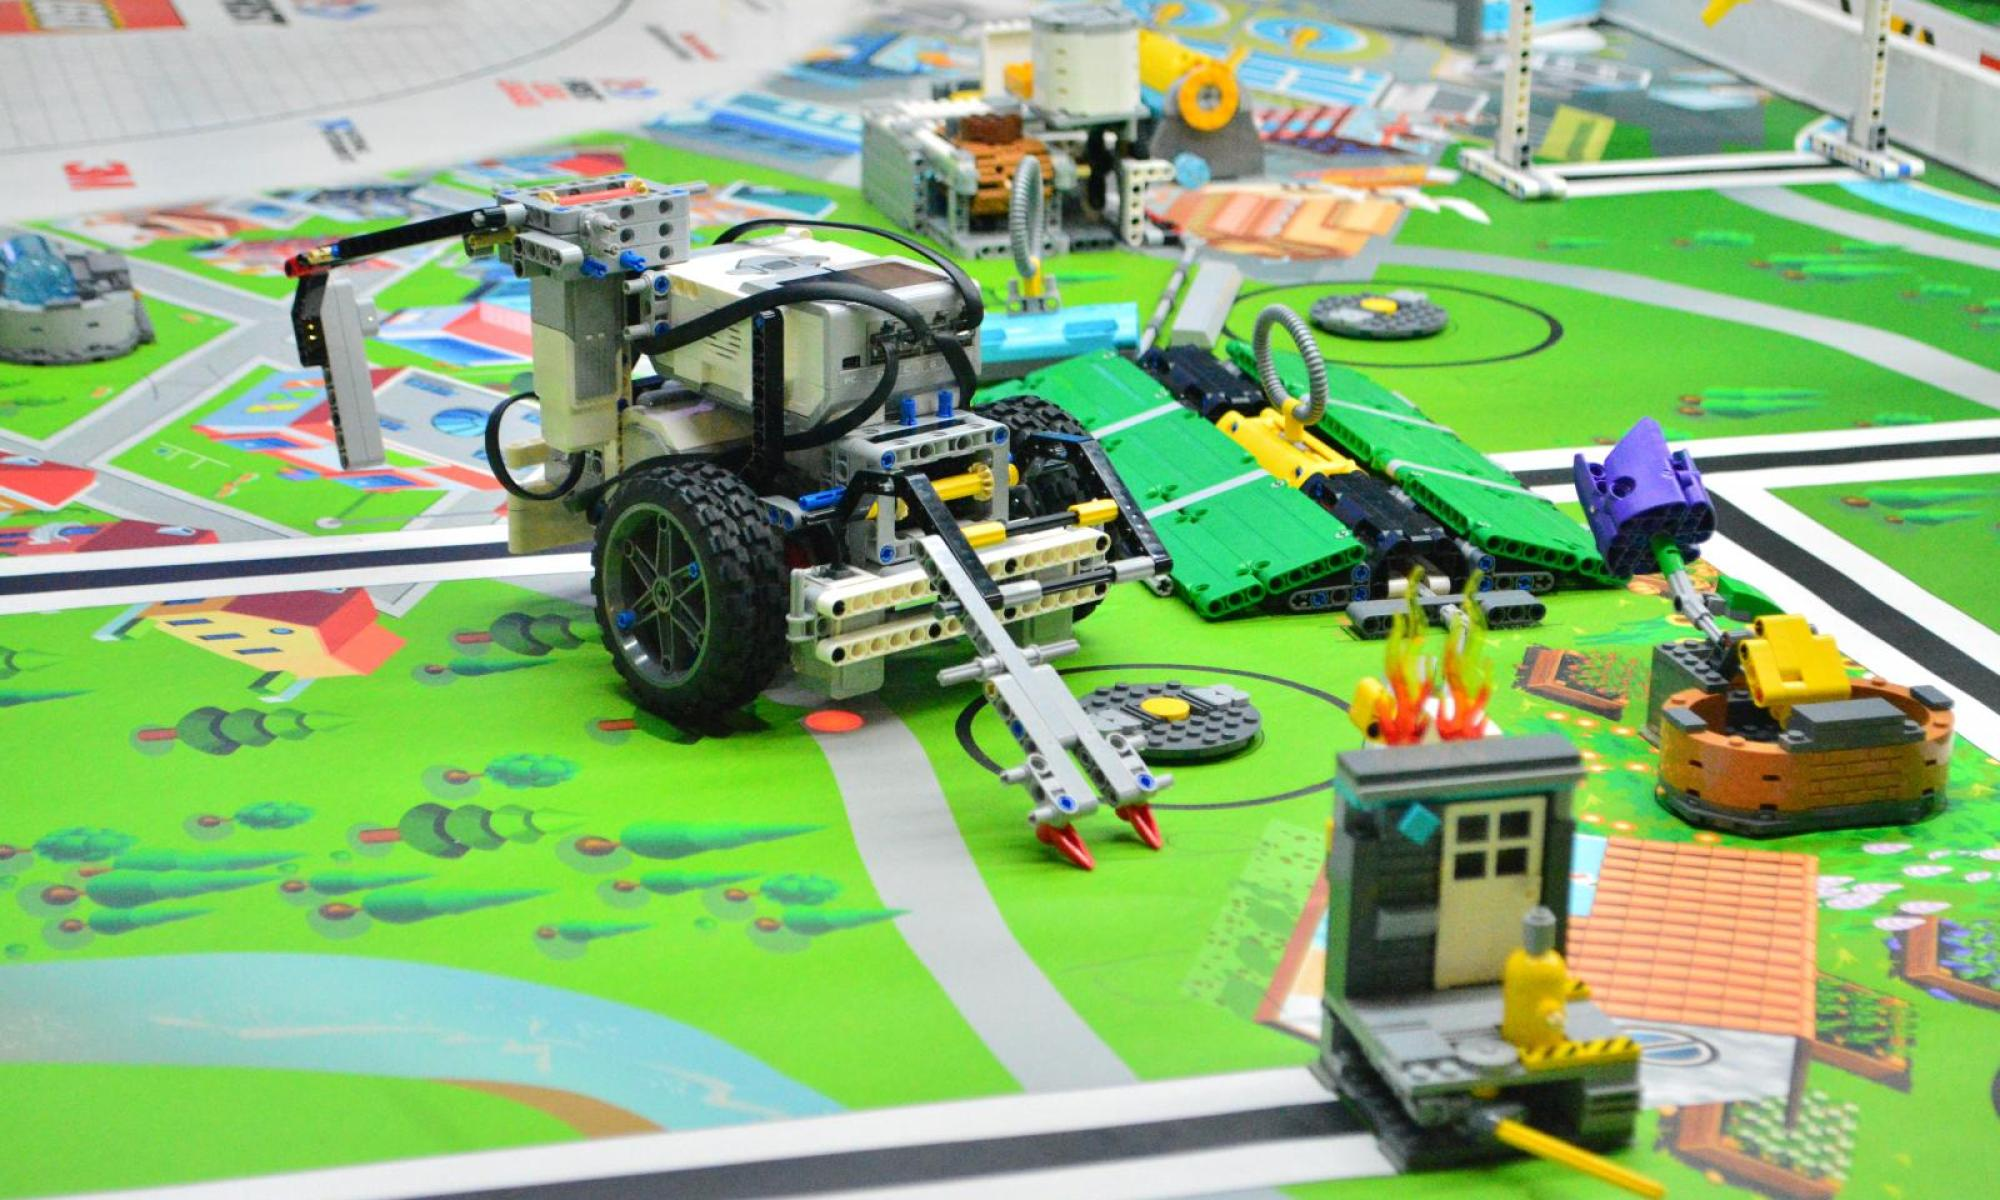 What BotQuest may look like featuring a LEGO EV3 rover.